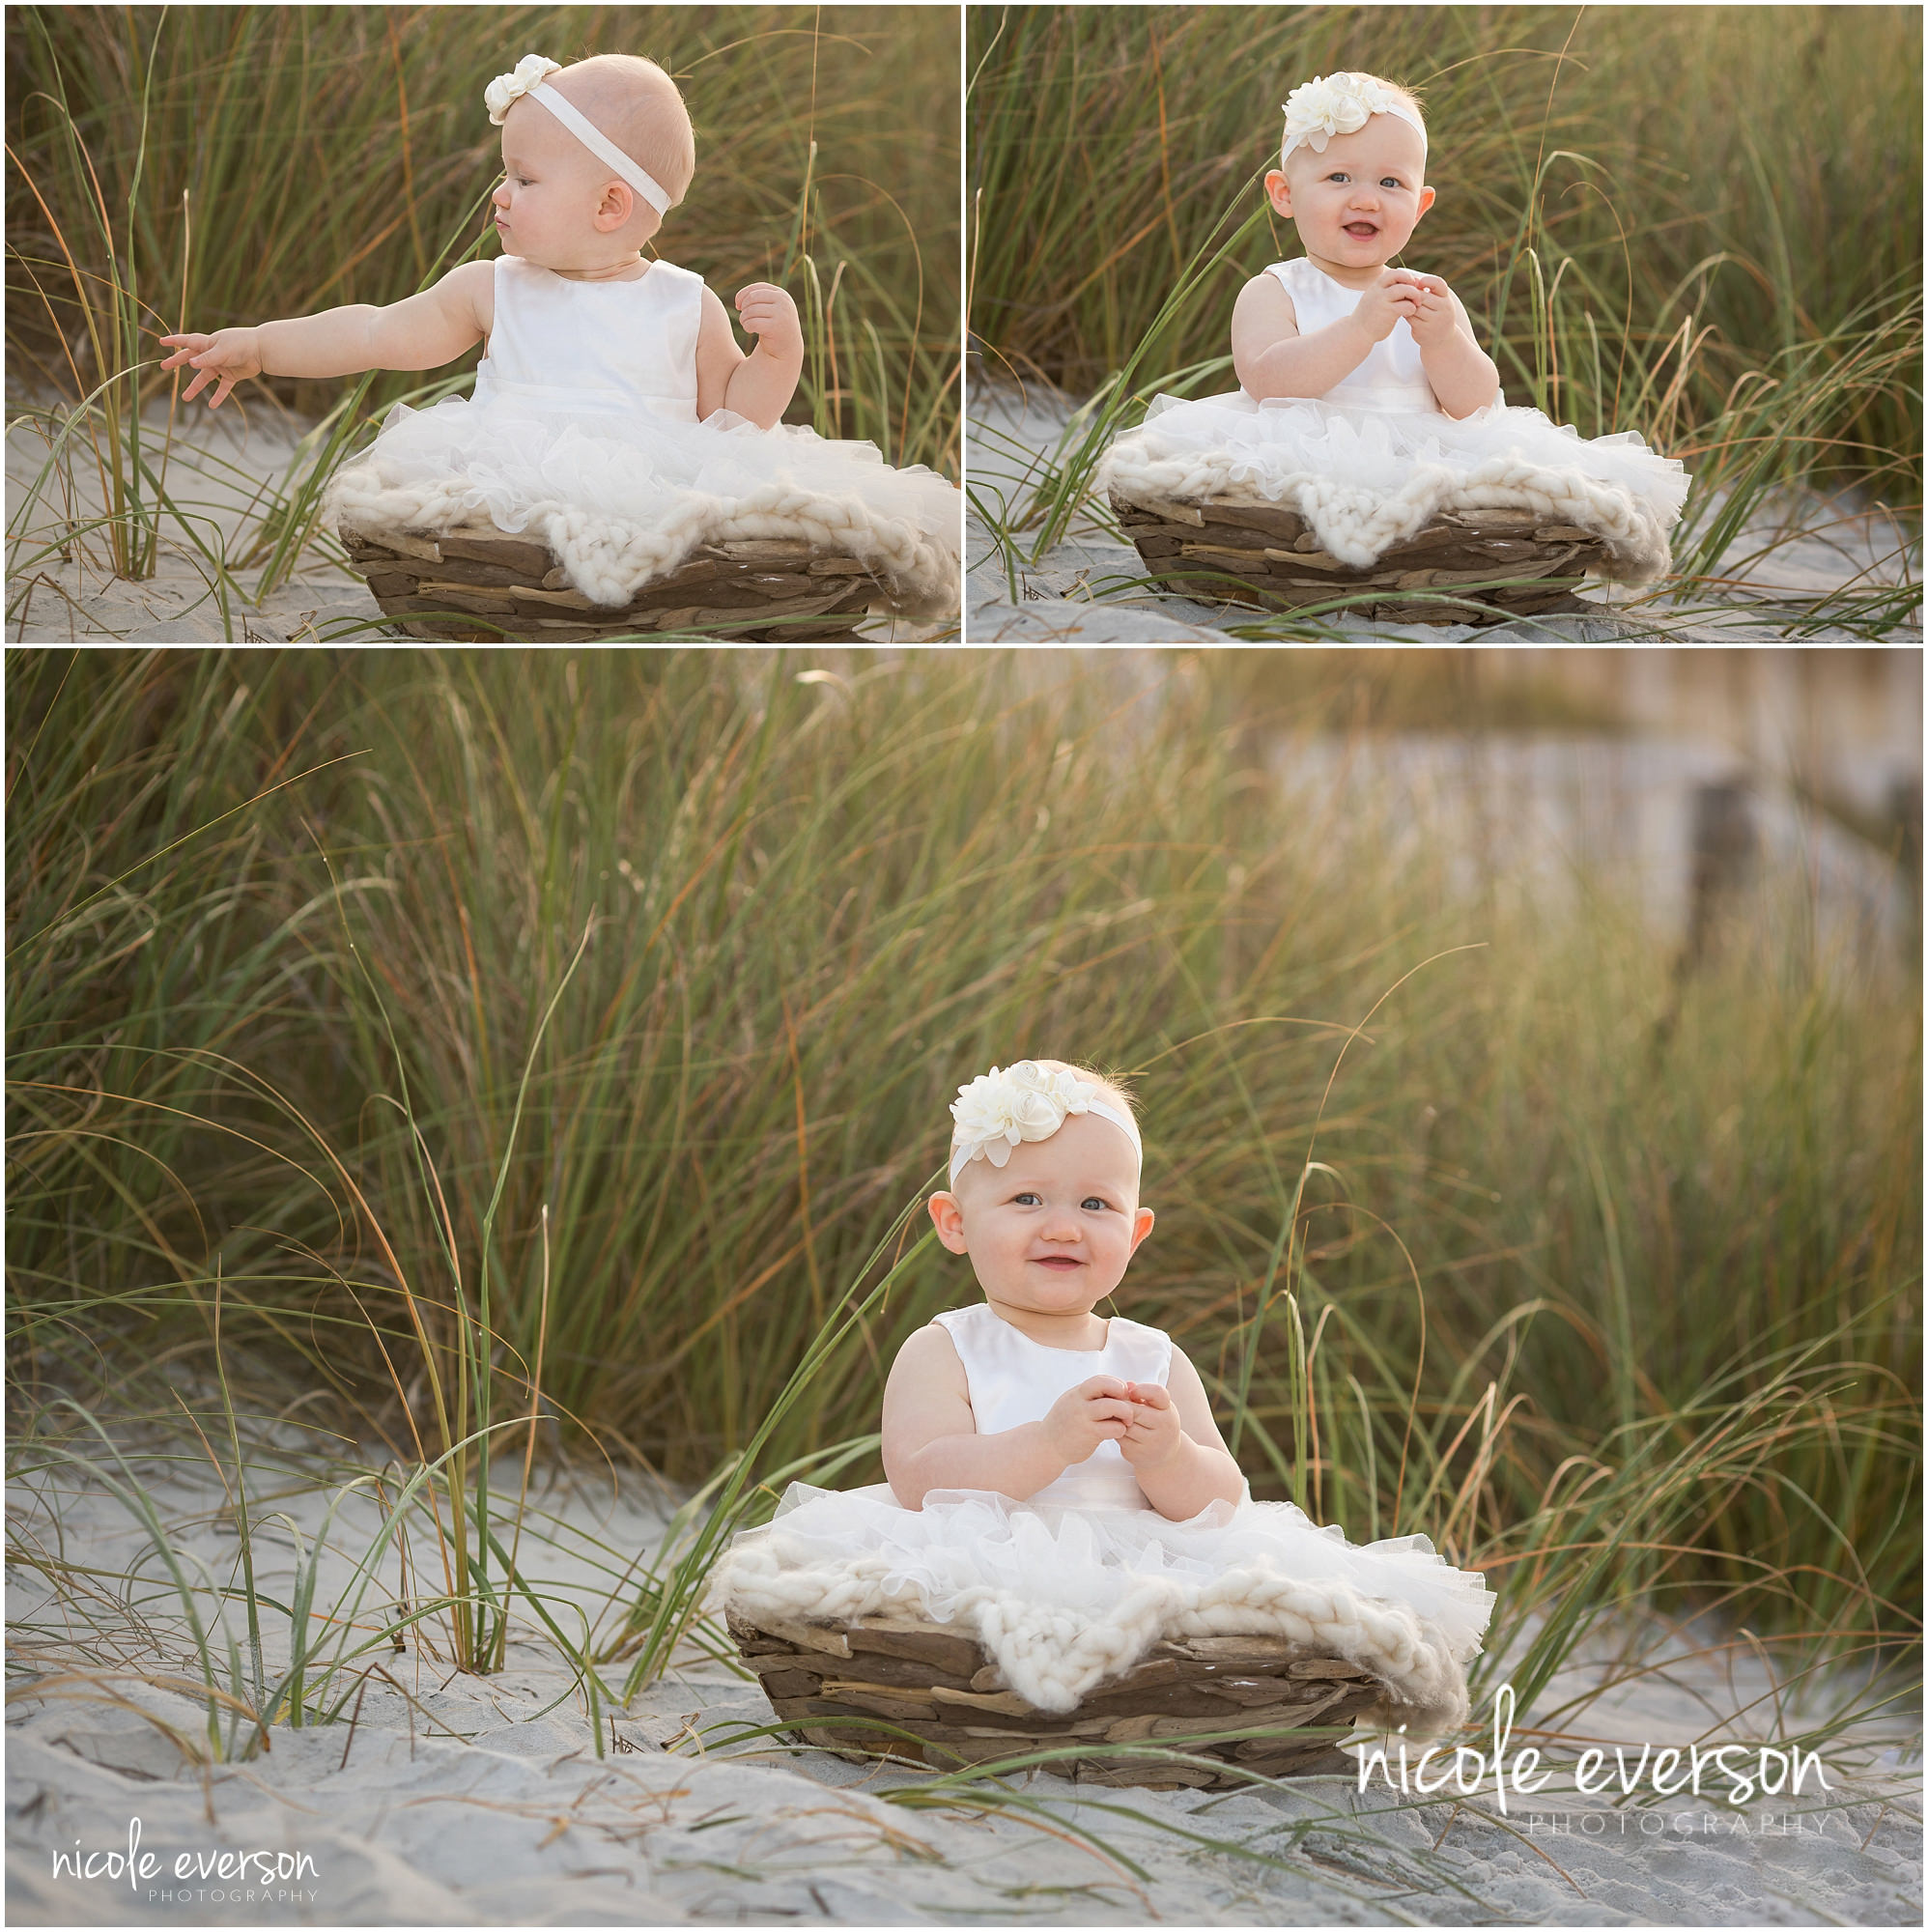 8 month old baby in seaside dunes